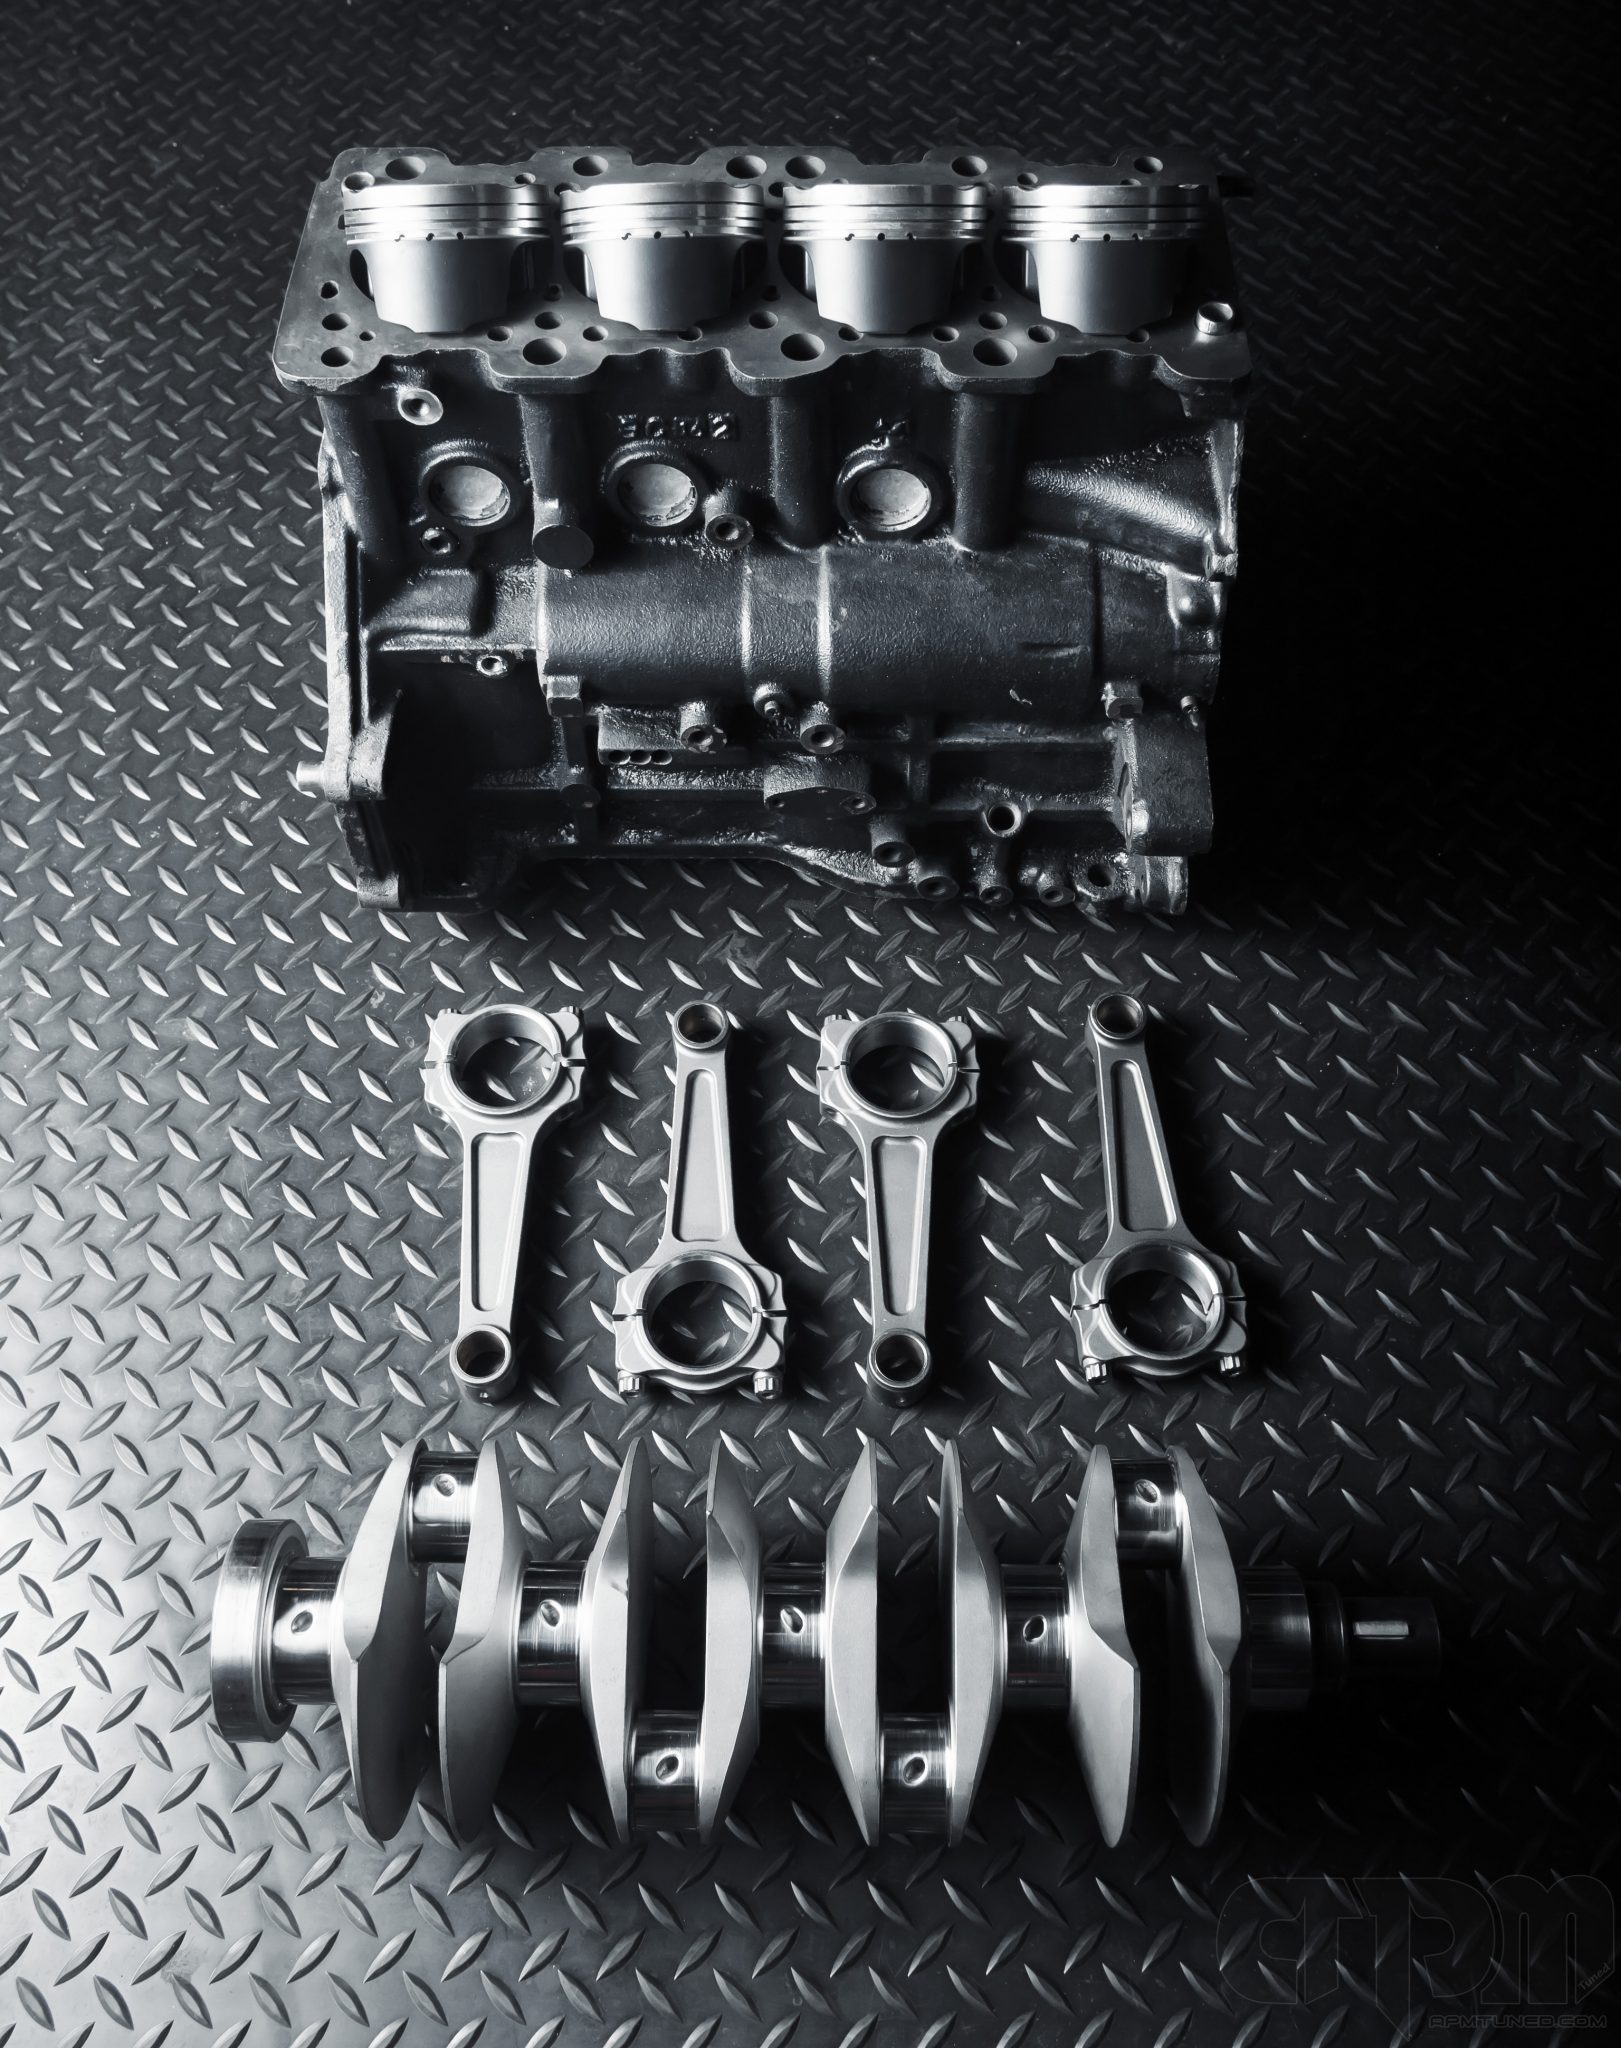 Evo shortblock with crankshaft, pistons, rods, getting ready for assembly